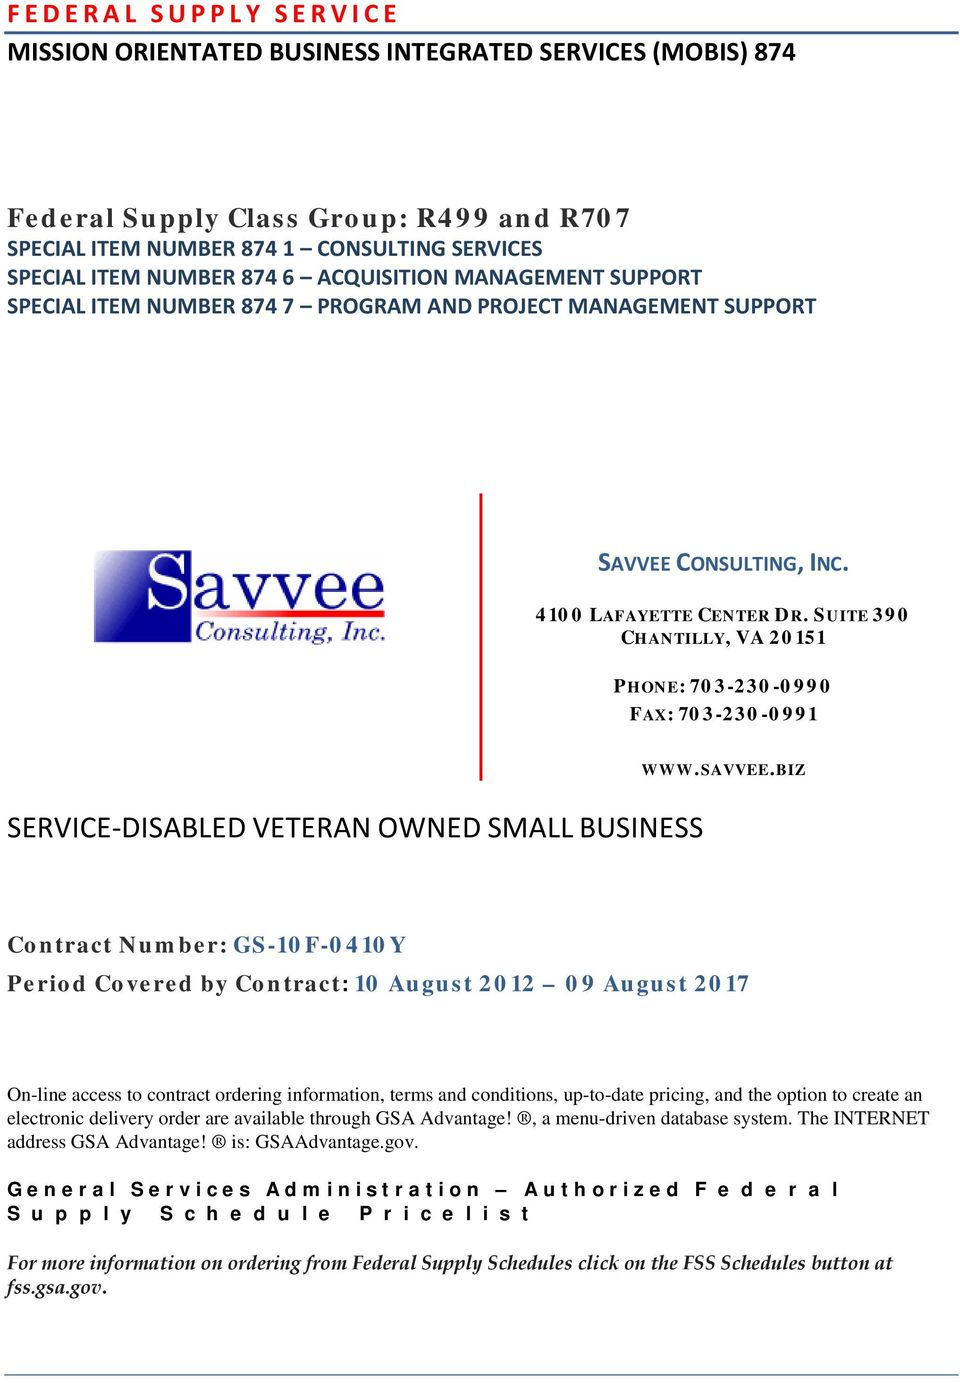 SUITE 390 CHANTILLY, VA 20151 PHONE: 703-230-0990 FAX: 703-230-0991 SERVICE-DISABLED VETERAN OWNED SMALL BUSINESS WWW.SAVVEE.